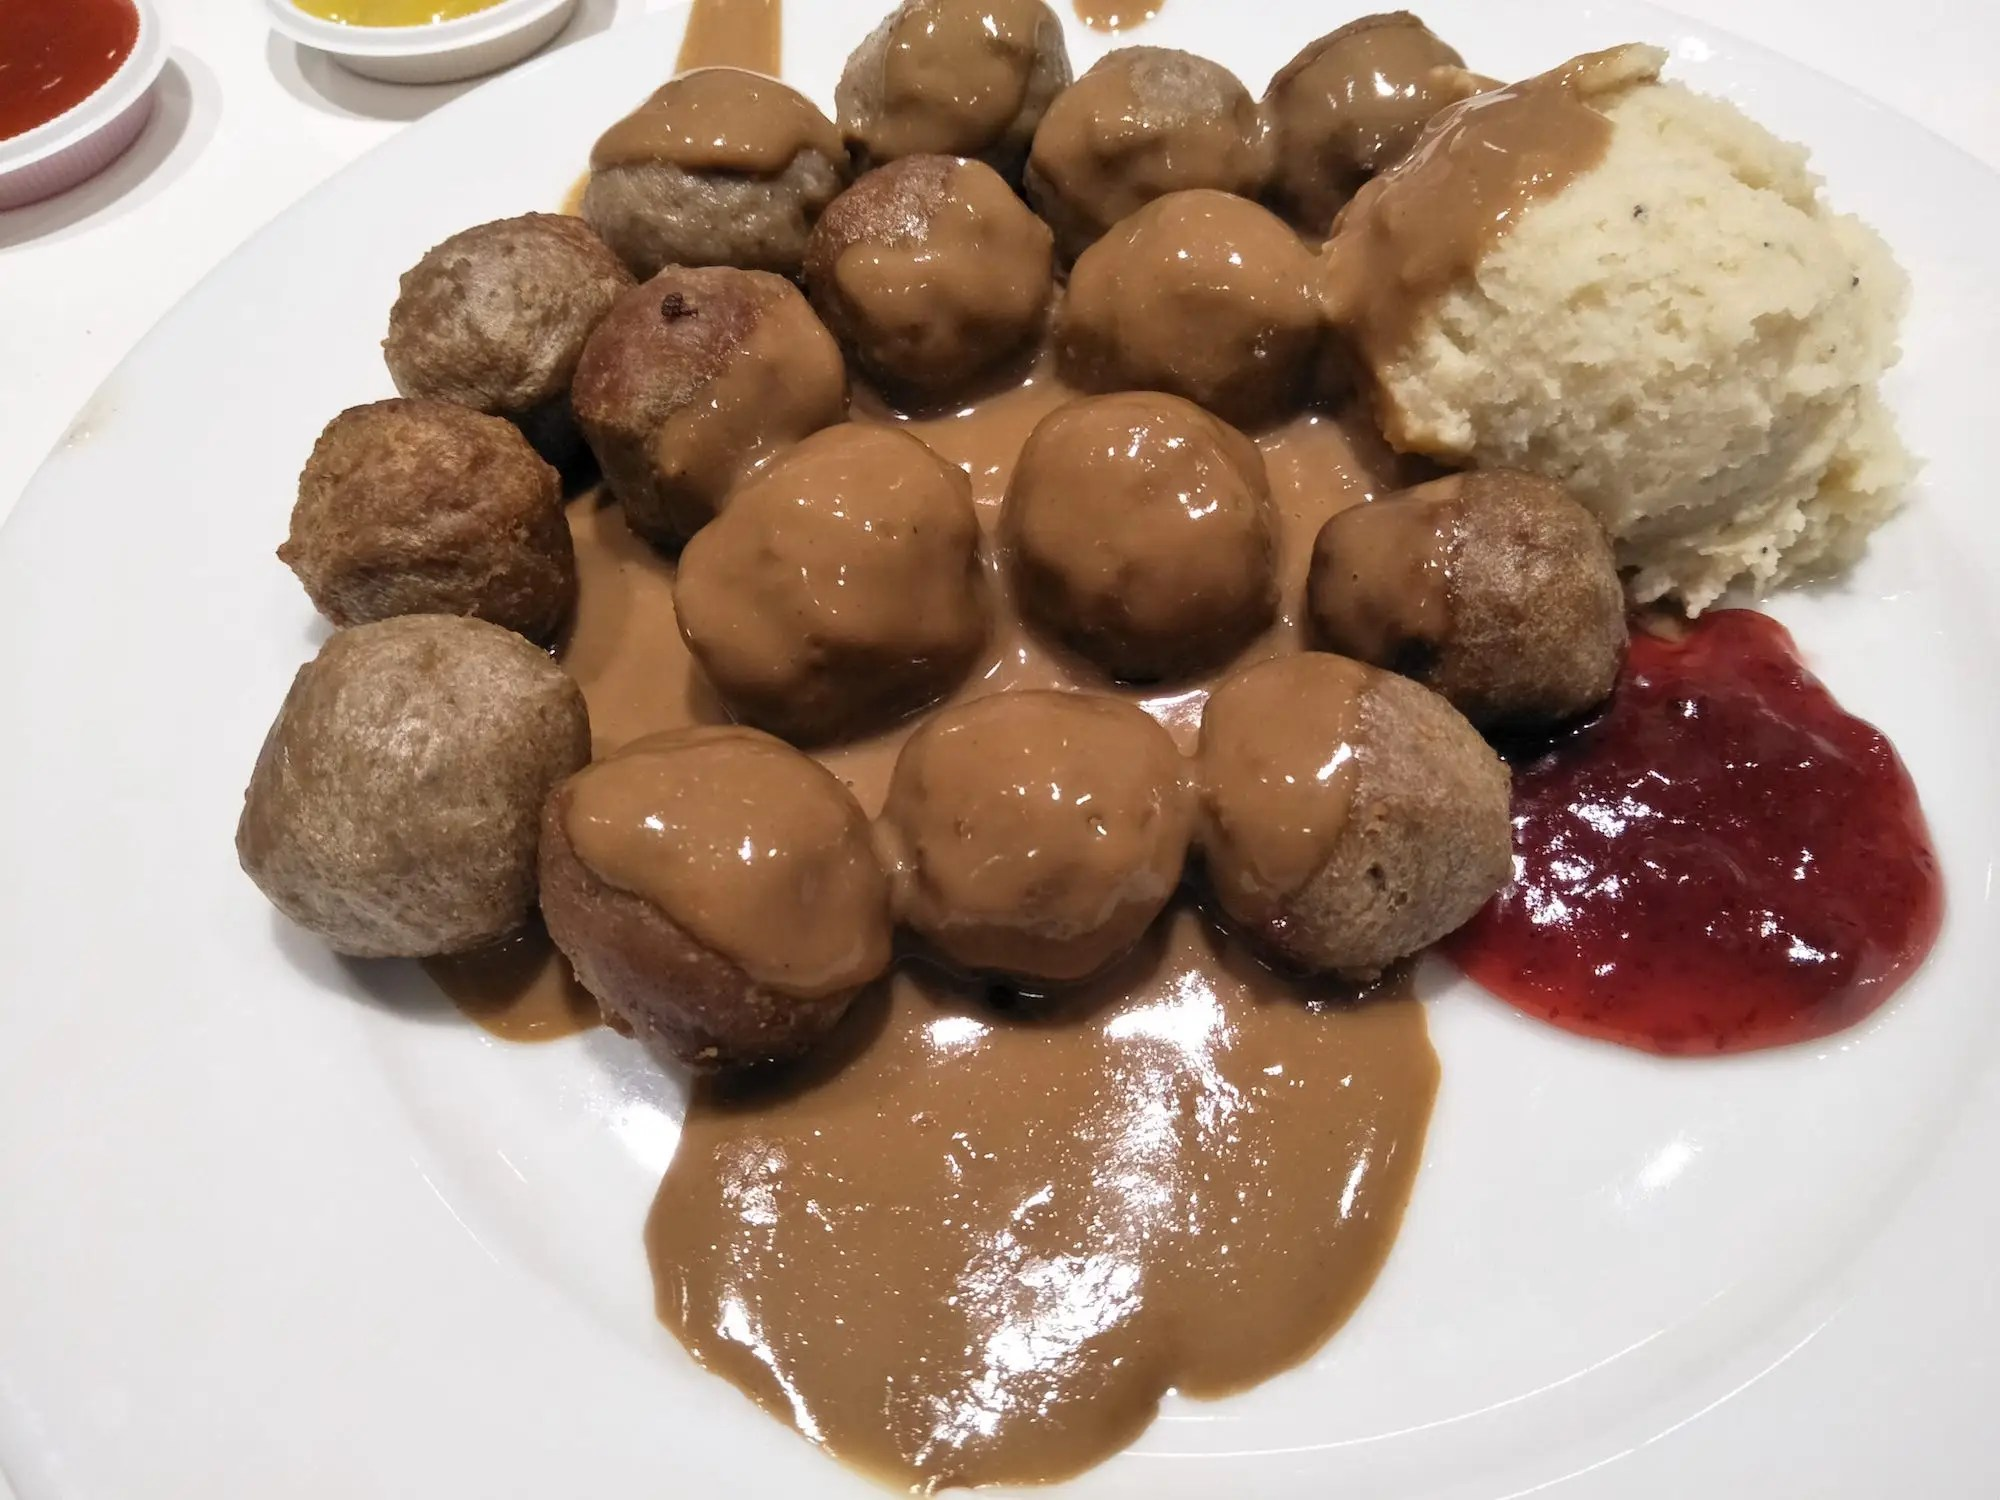 Ikea Shares Its Famous Swedish Meatball And Gravy Recipe Insider